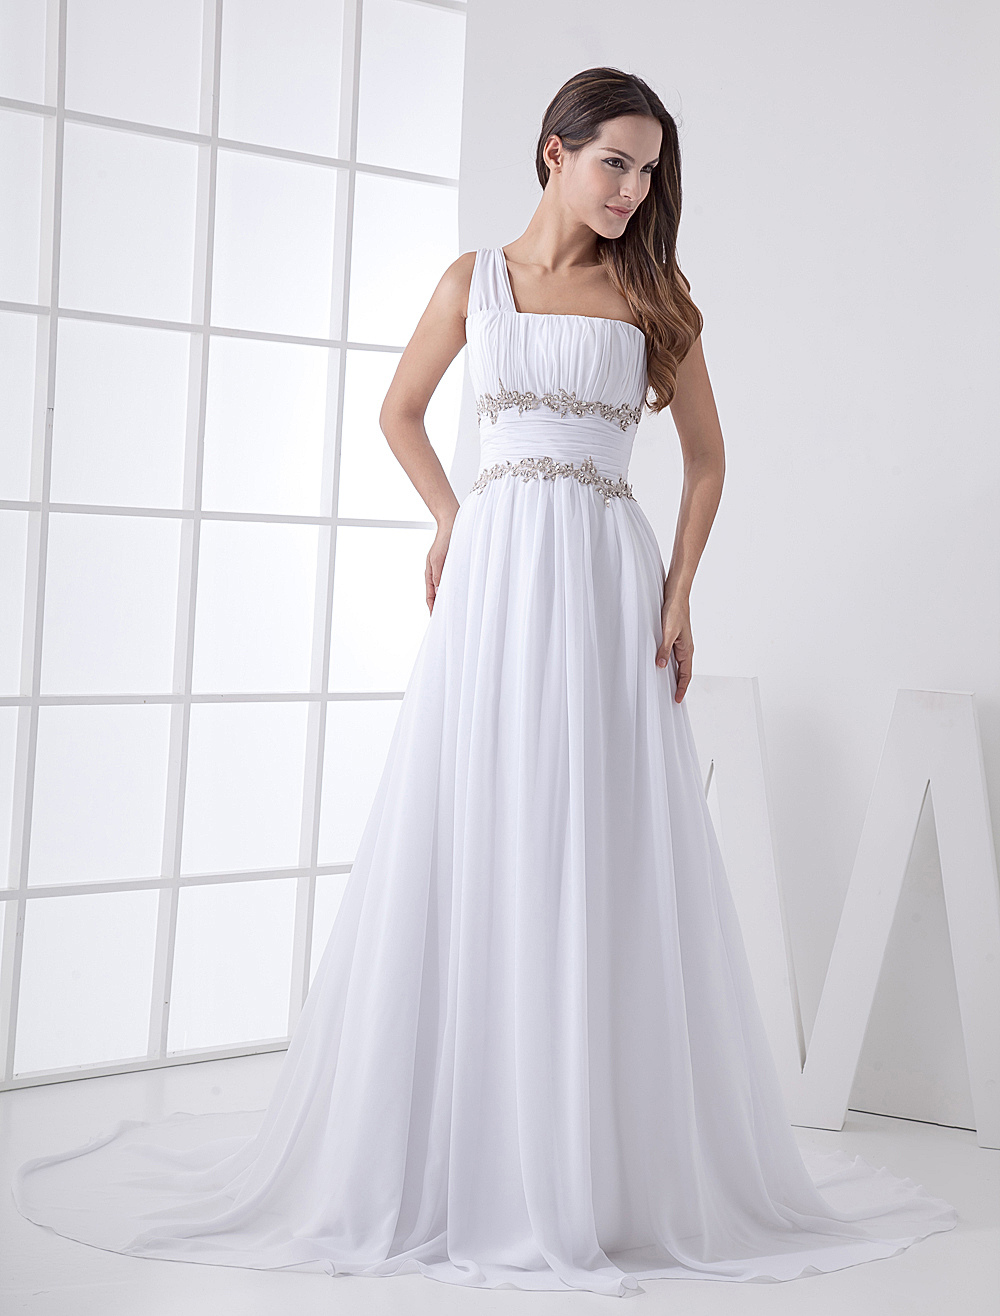 Summer Wedding Dress One Shoulder Chiffon Beaded Lace Up Beach Bridal Gowns